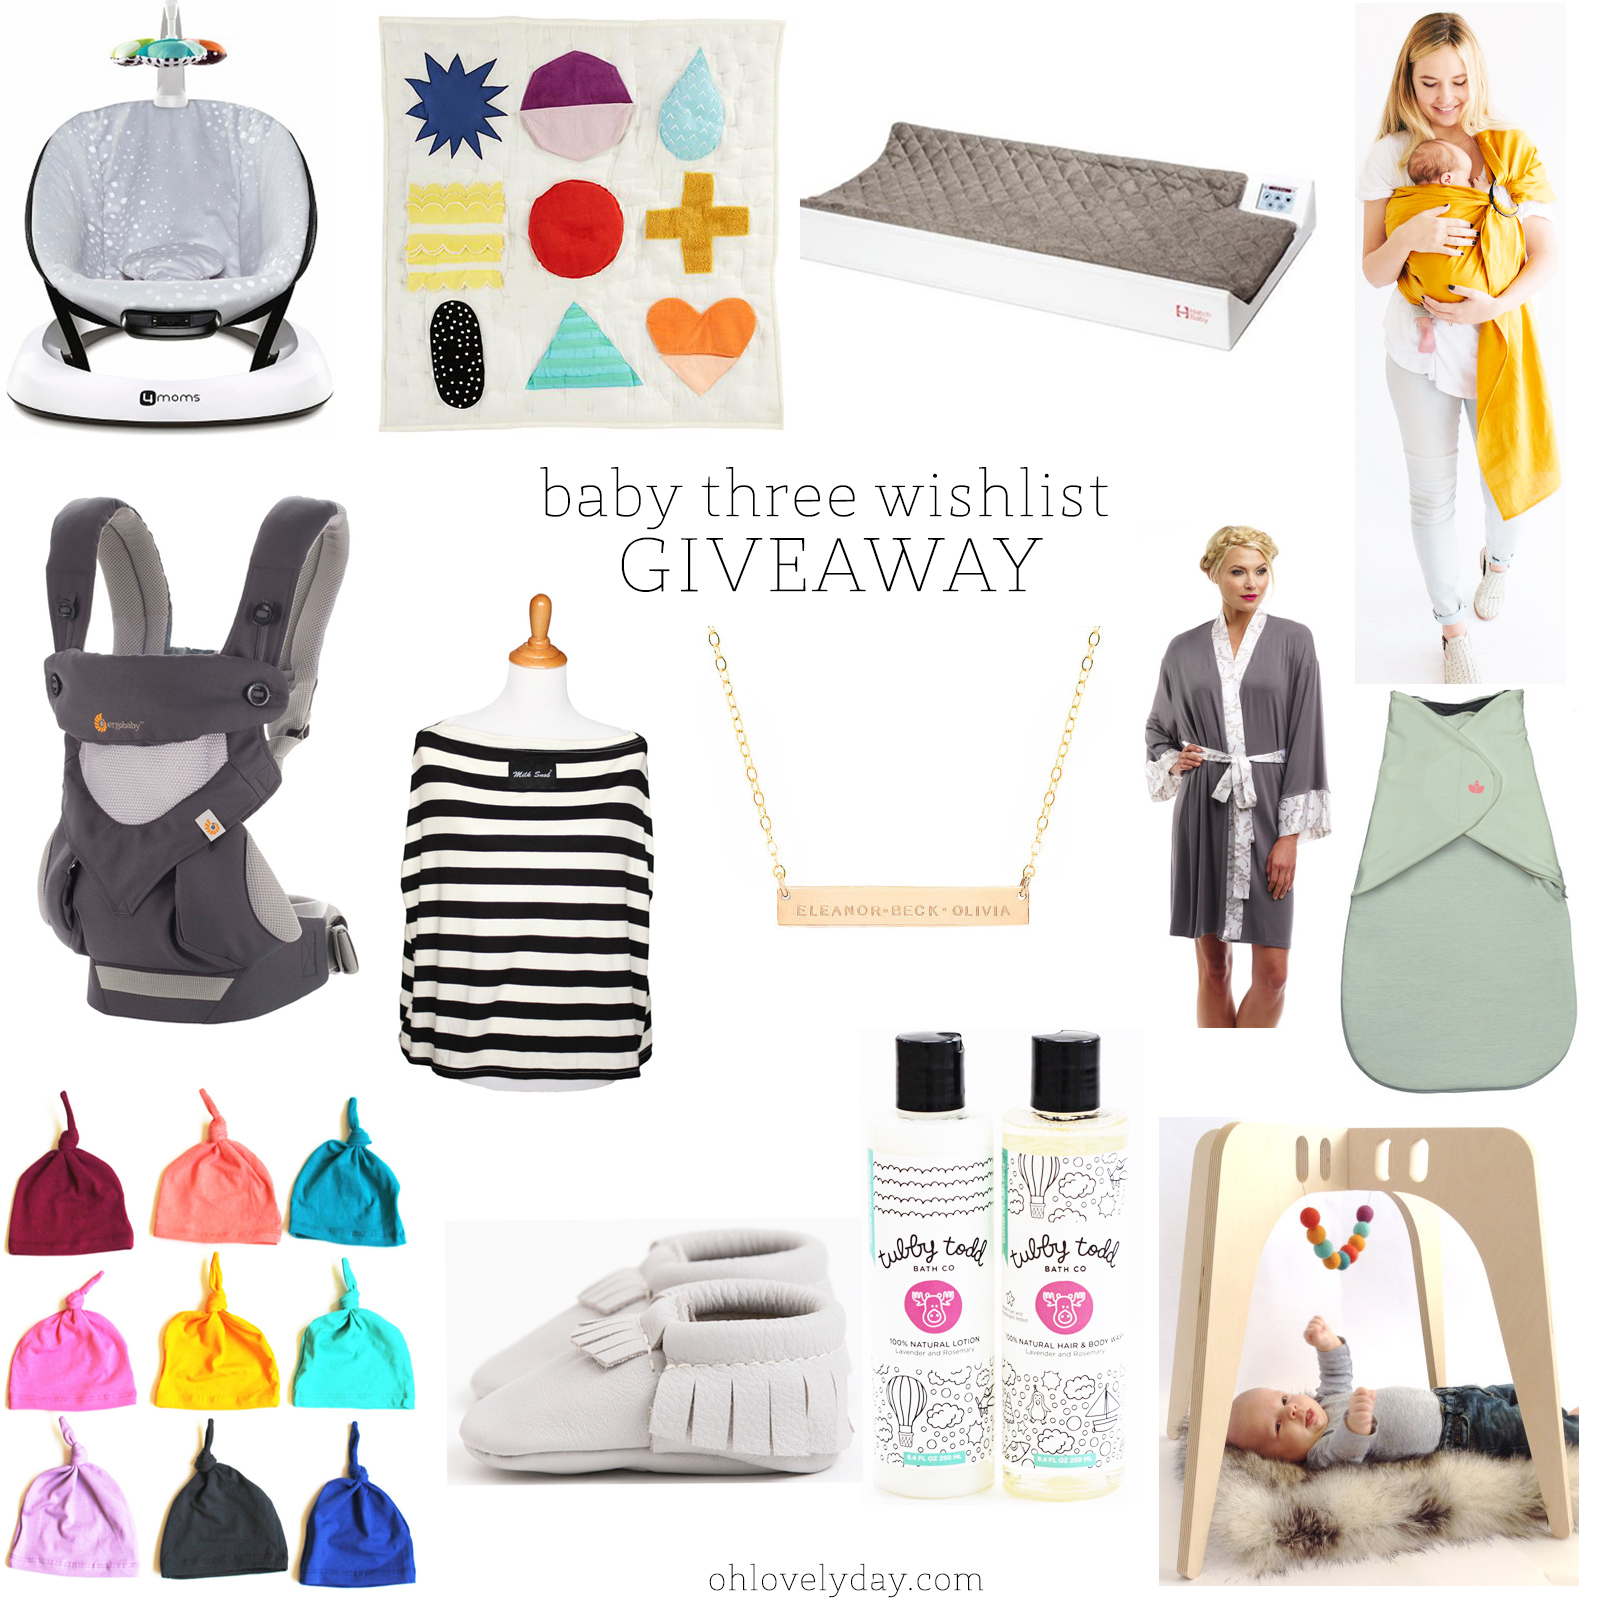 baby product wishlist for baby three + GIVEAWAY   Oh Lovely Day